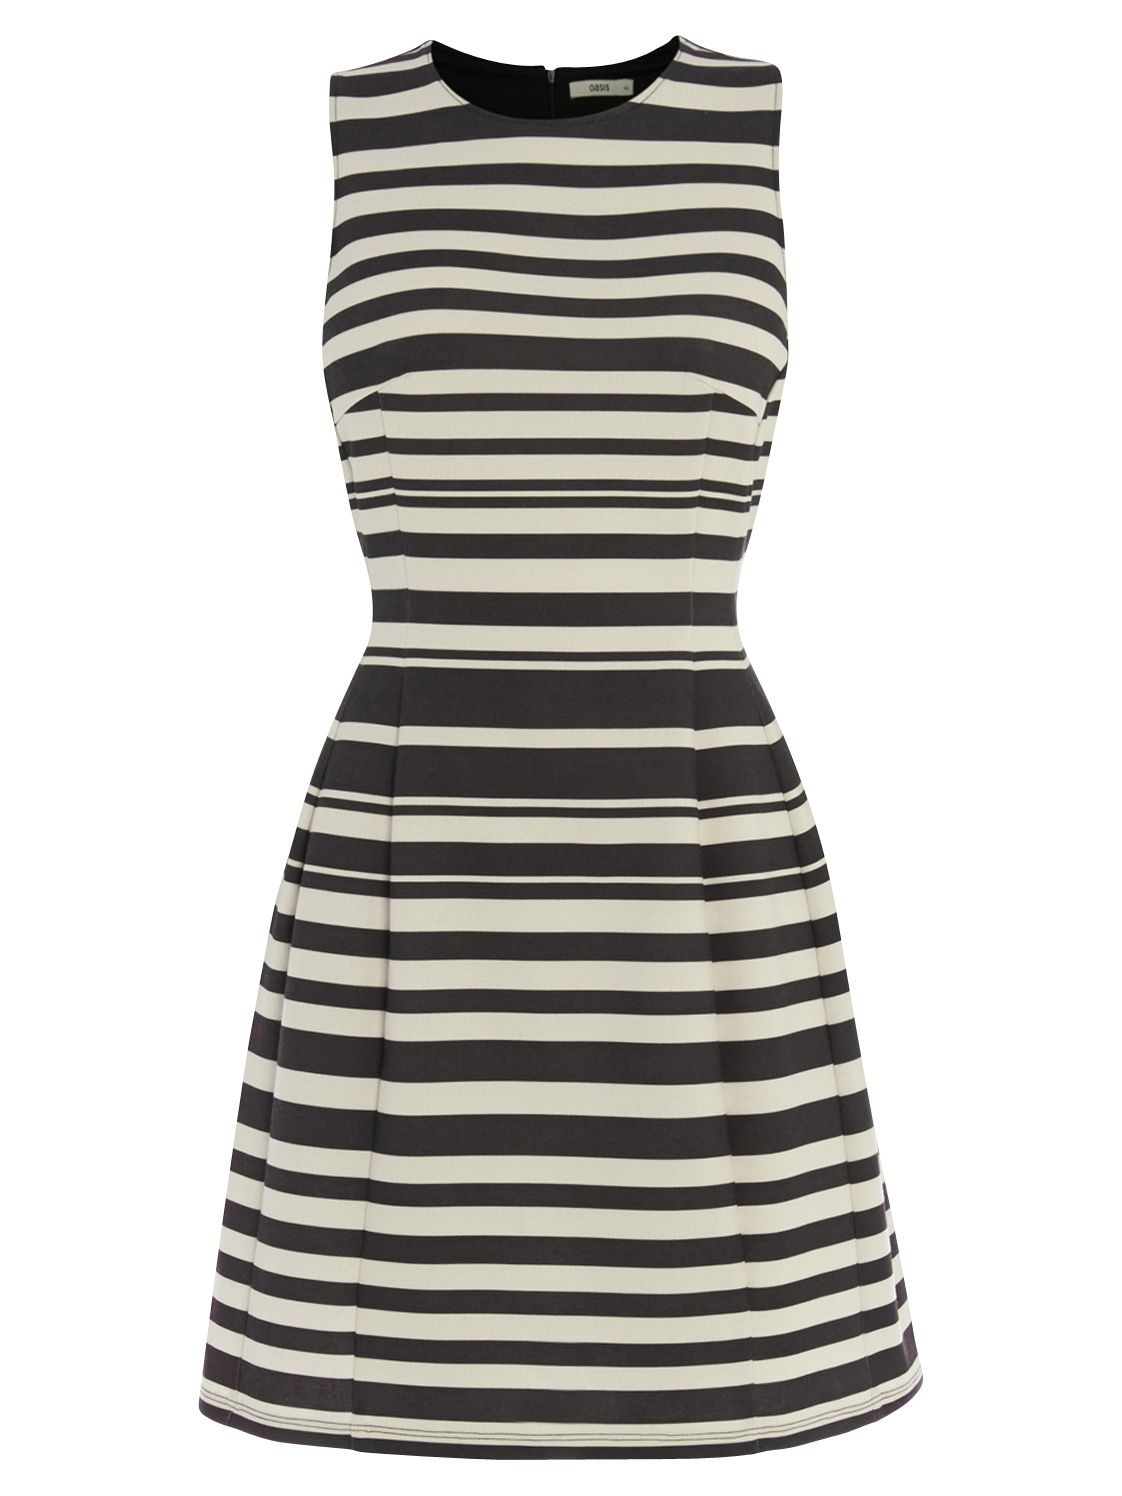 oasis stripe ponte dress black/white, oasis, stripe, ponte, dress, black/white, special offers, womenswear offers, women, womens dresses, latest reductions, womens dresses offers, 1865848